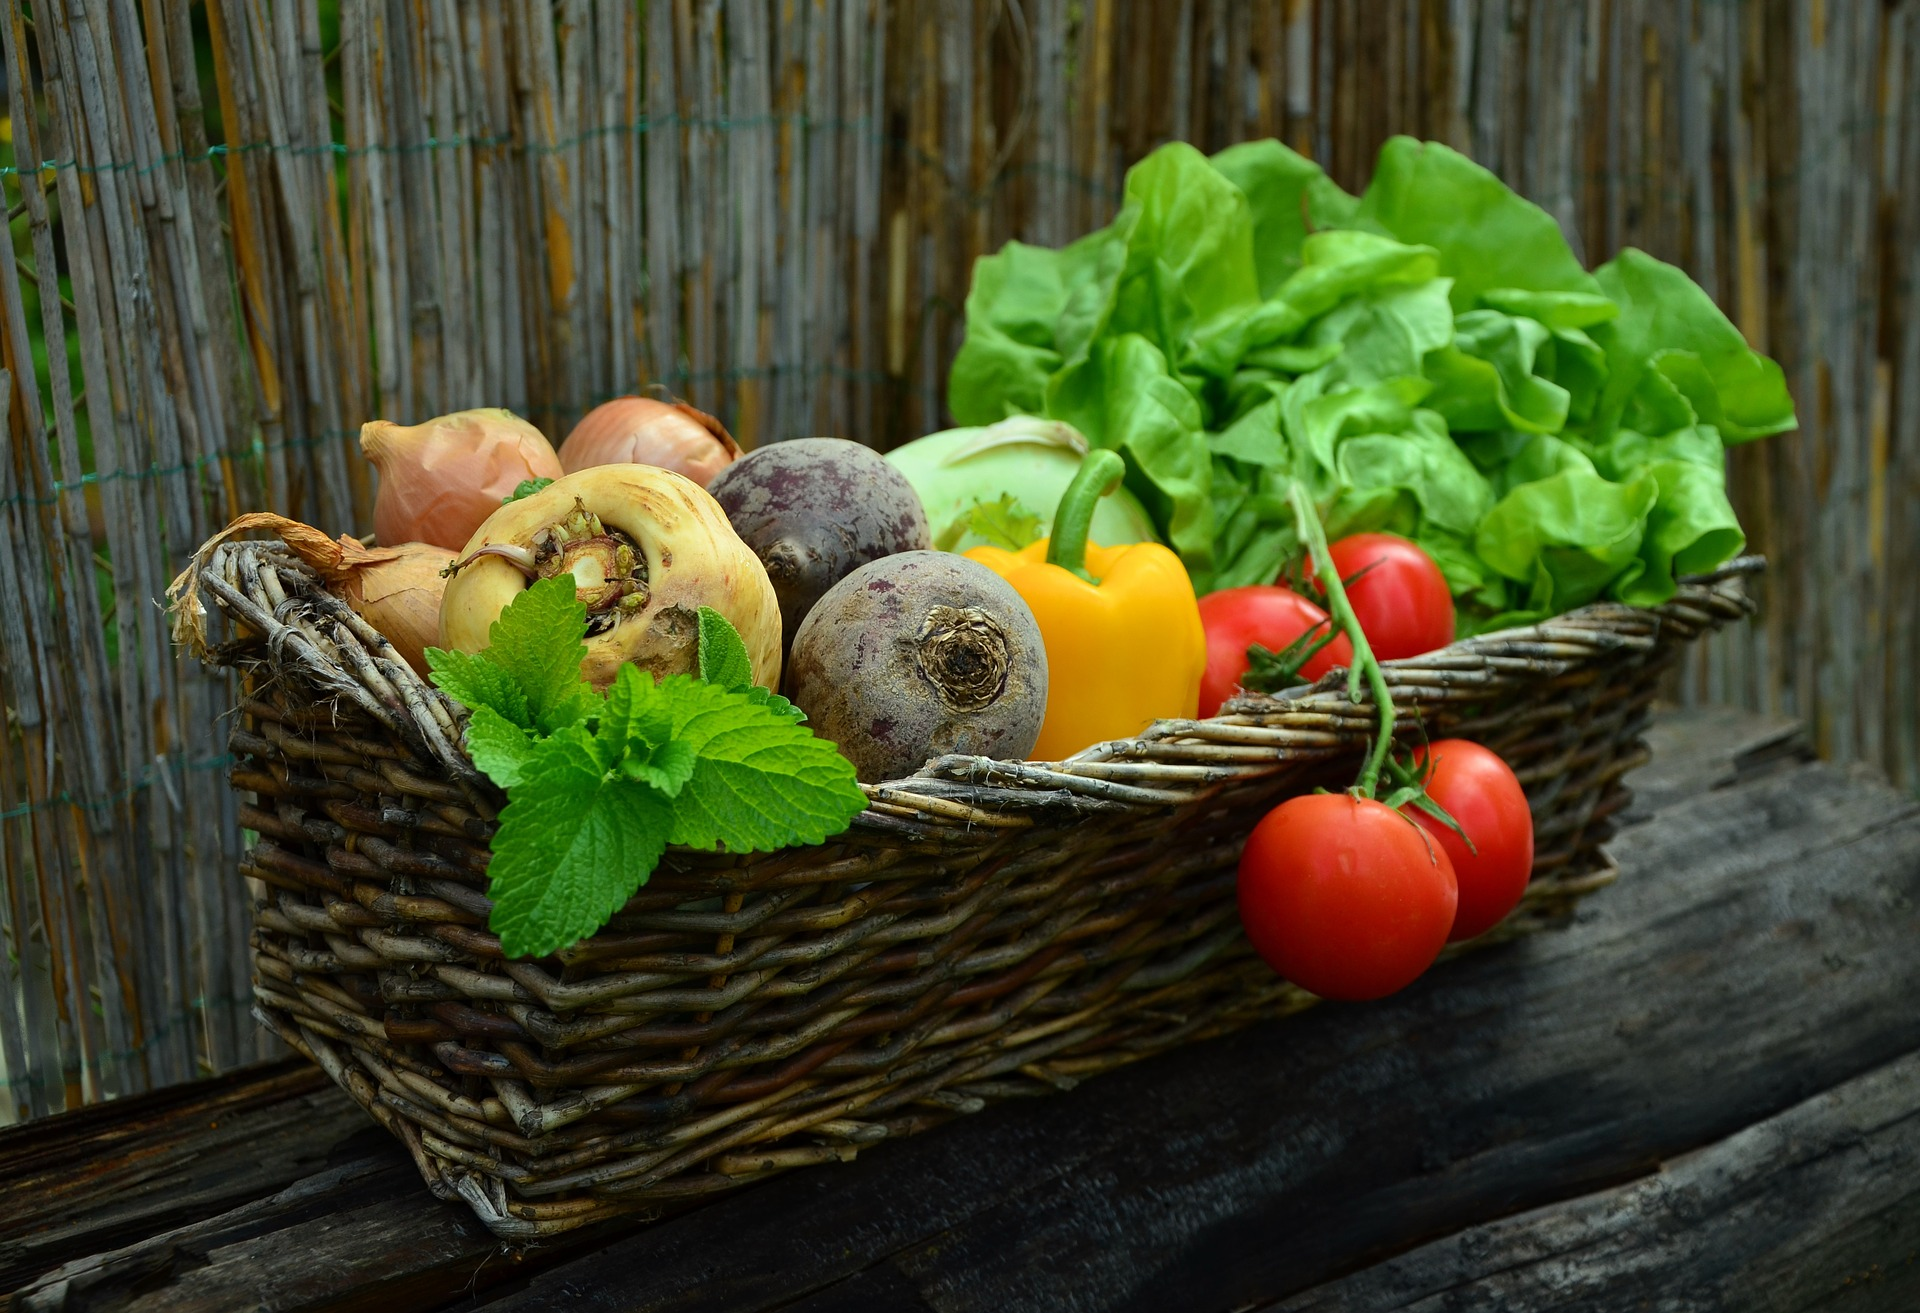 Colorful fresh vegetables in a wicker box with a wood background